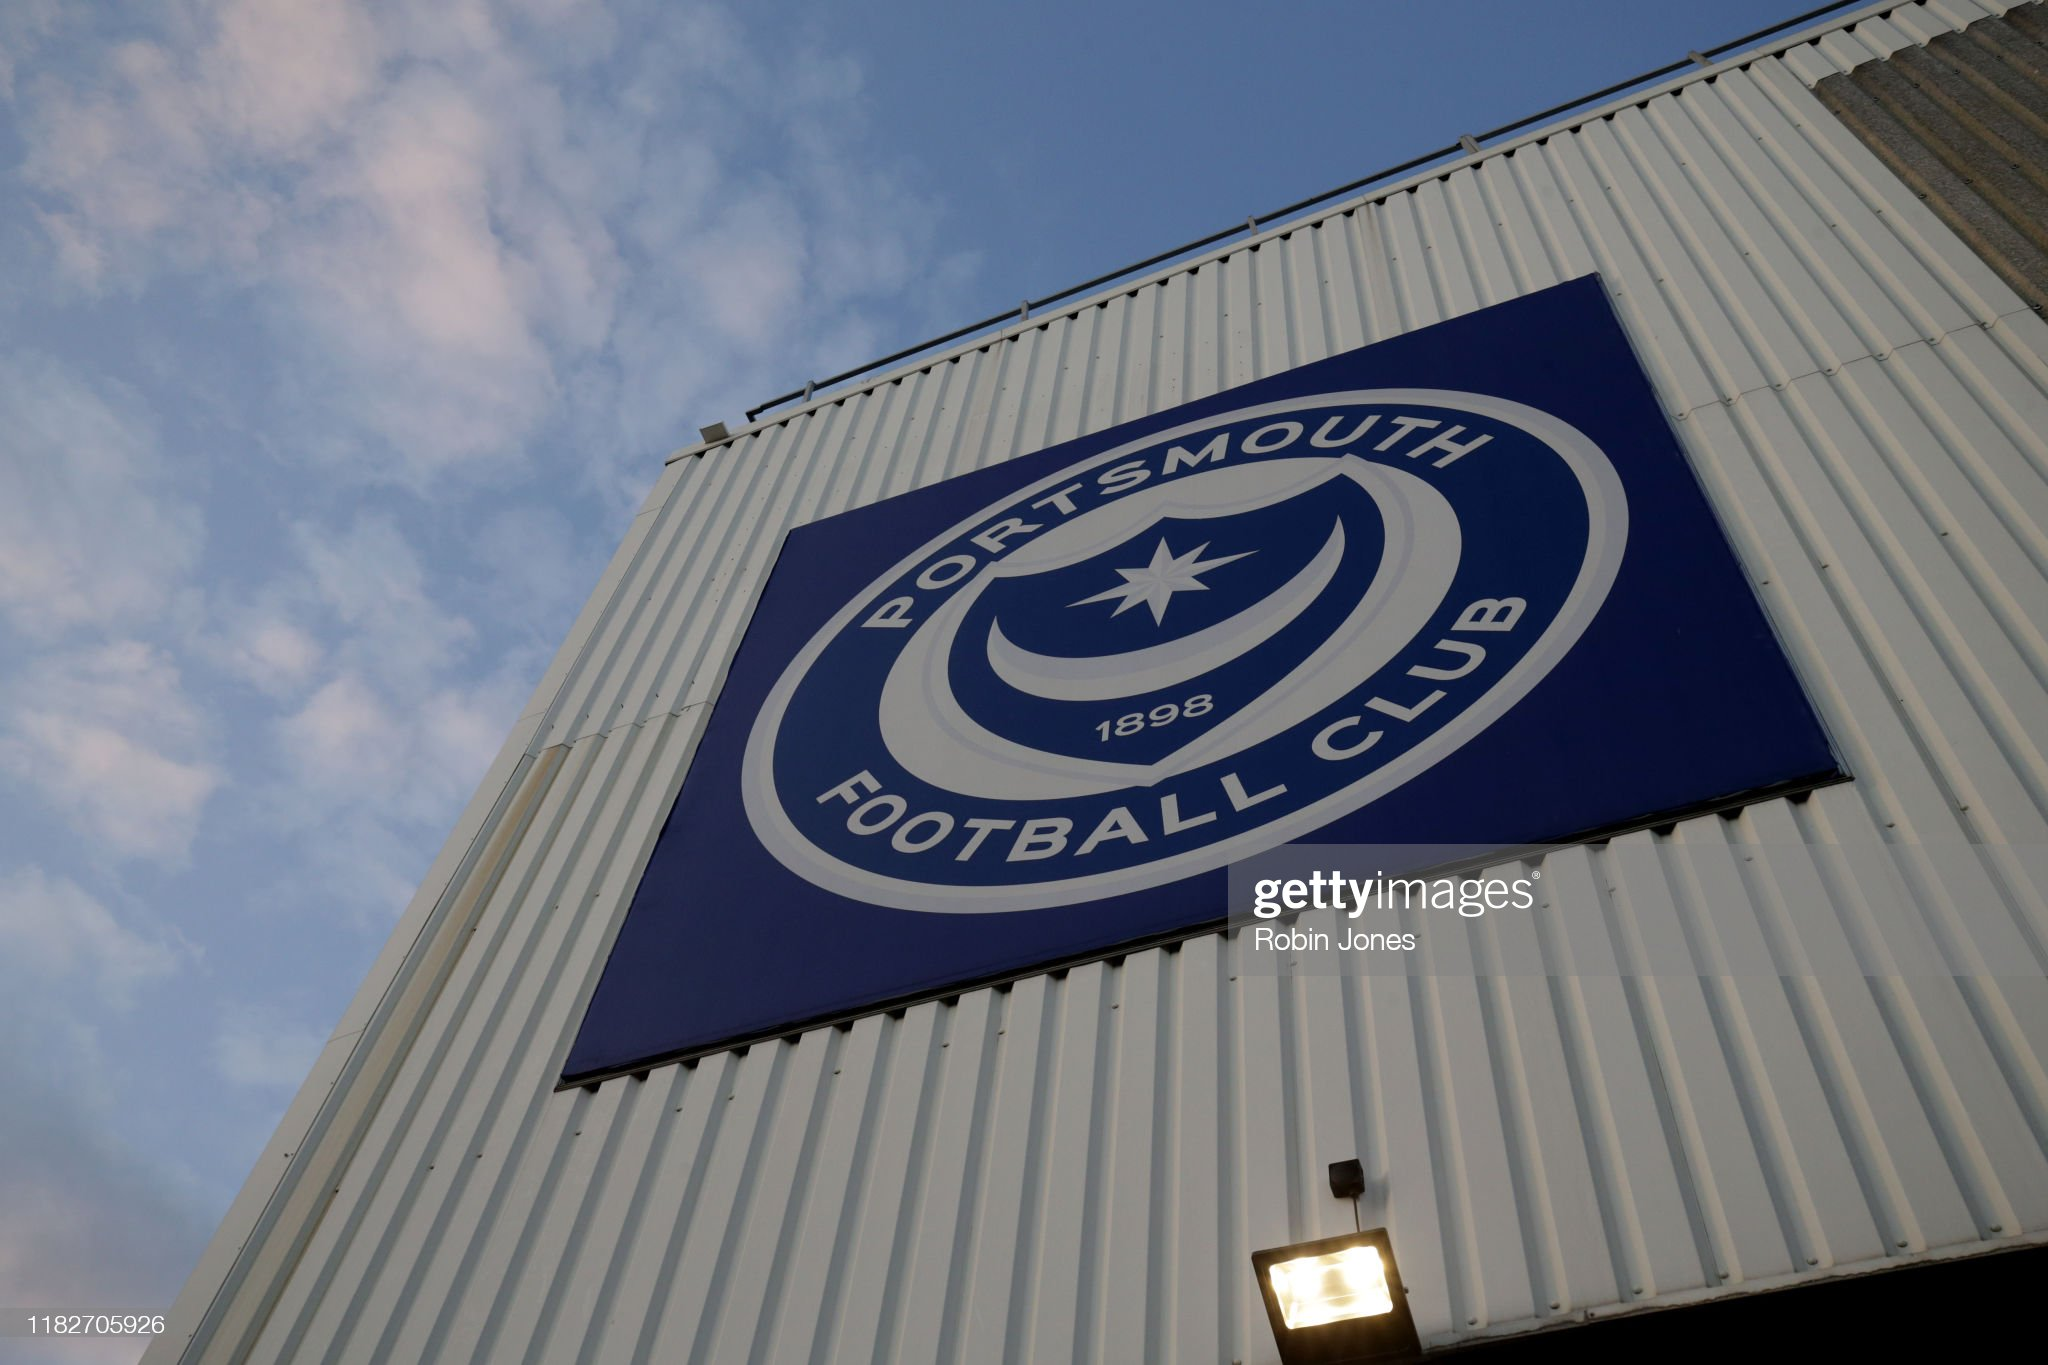 Portsmouth v Arsenal Preview, prediction and odds